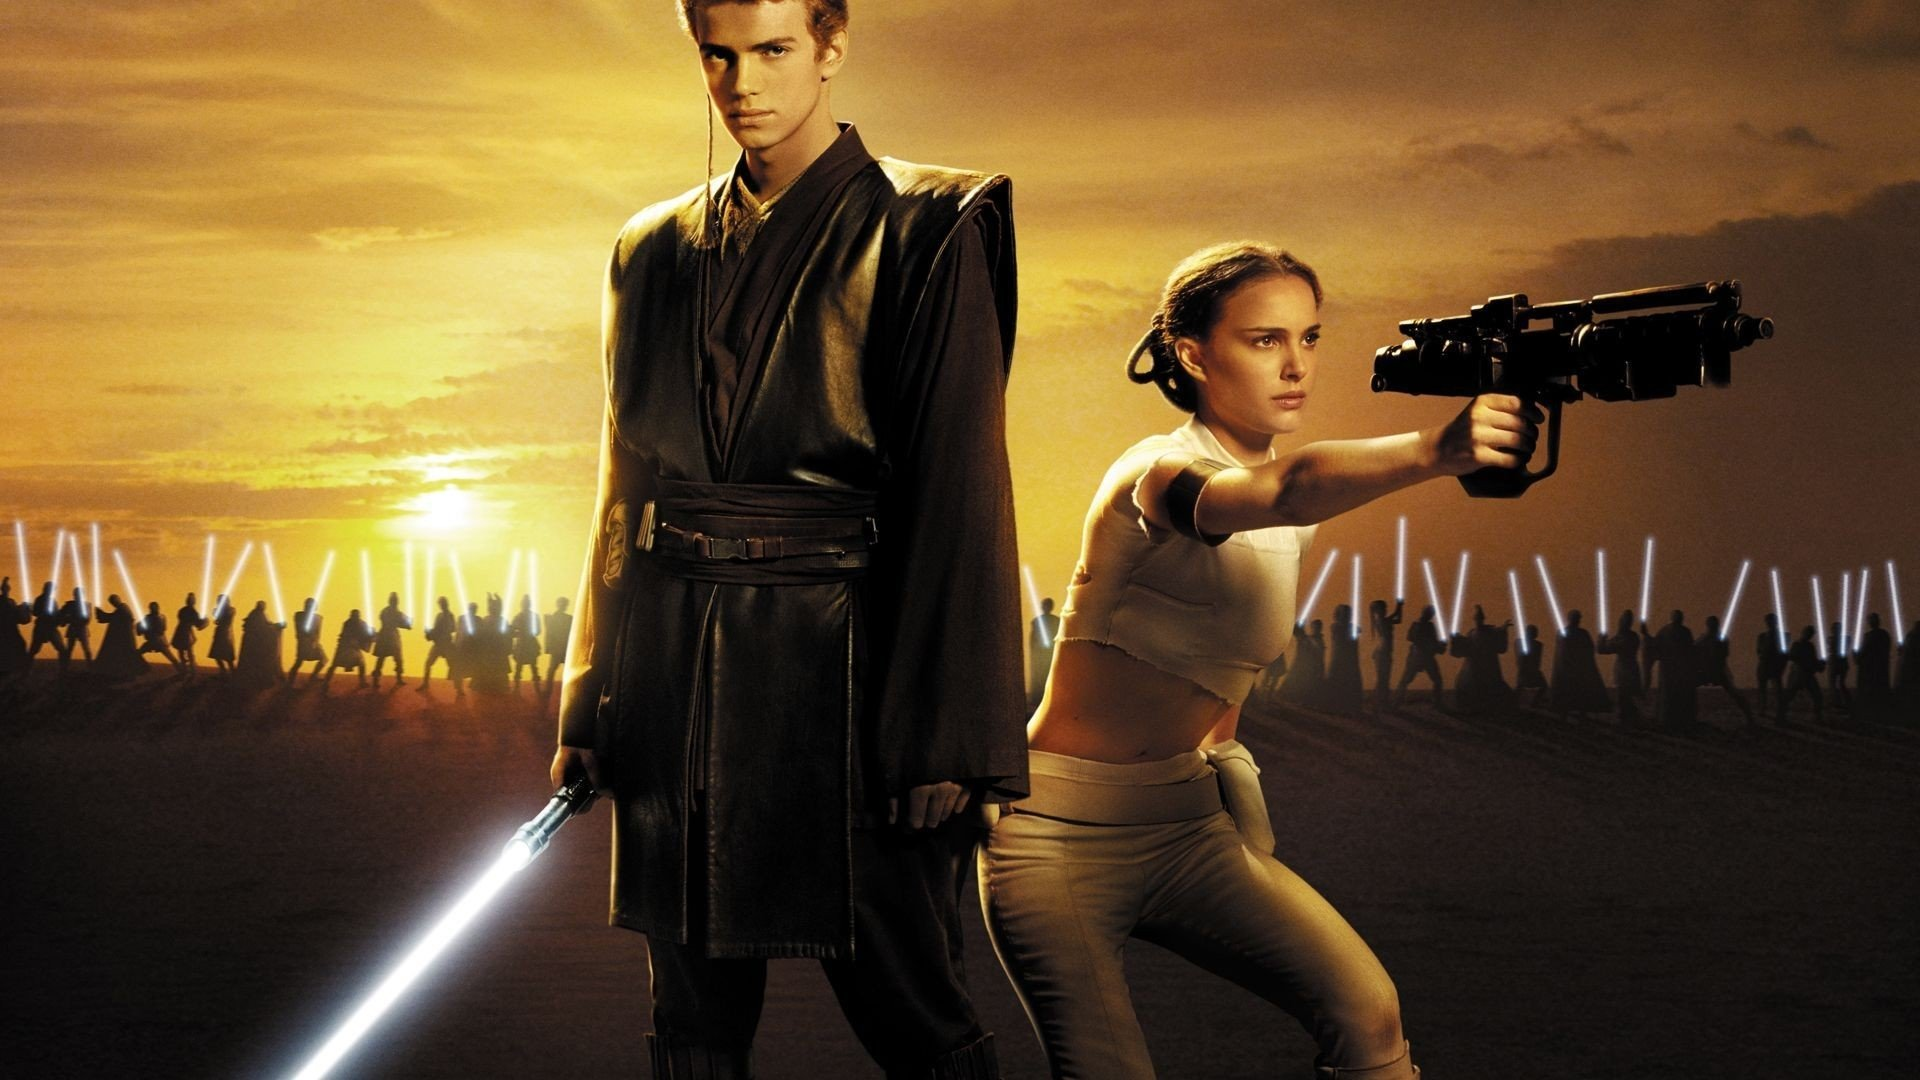 41 Star Wars Episode Ii Attack Of The Clones Hd Wallpapers Background Images Wallpaper Abyss